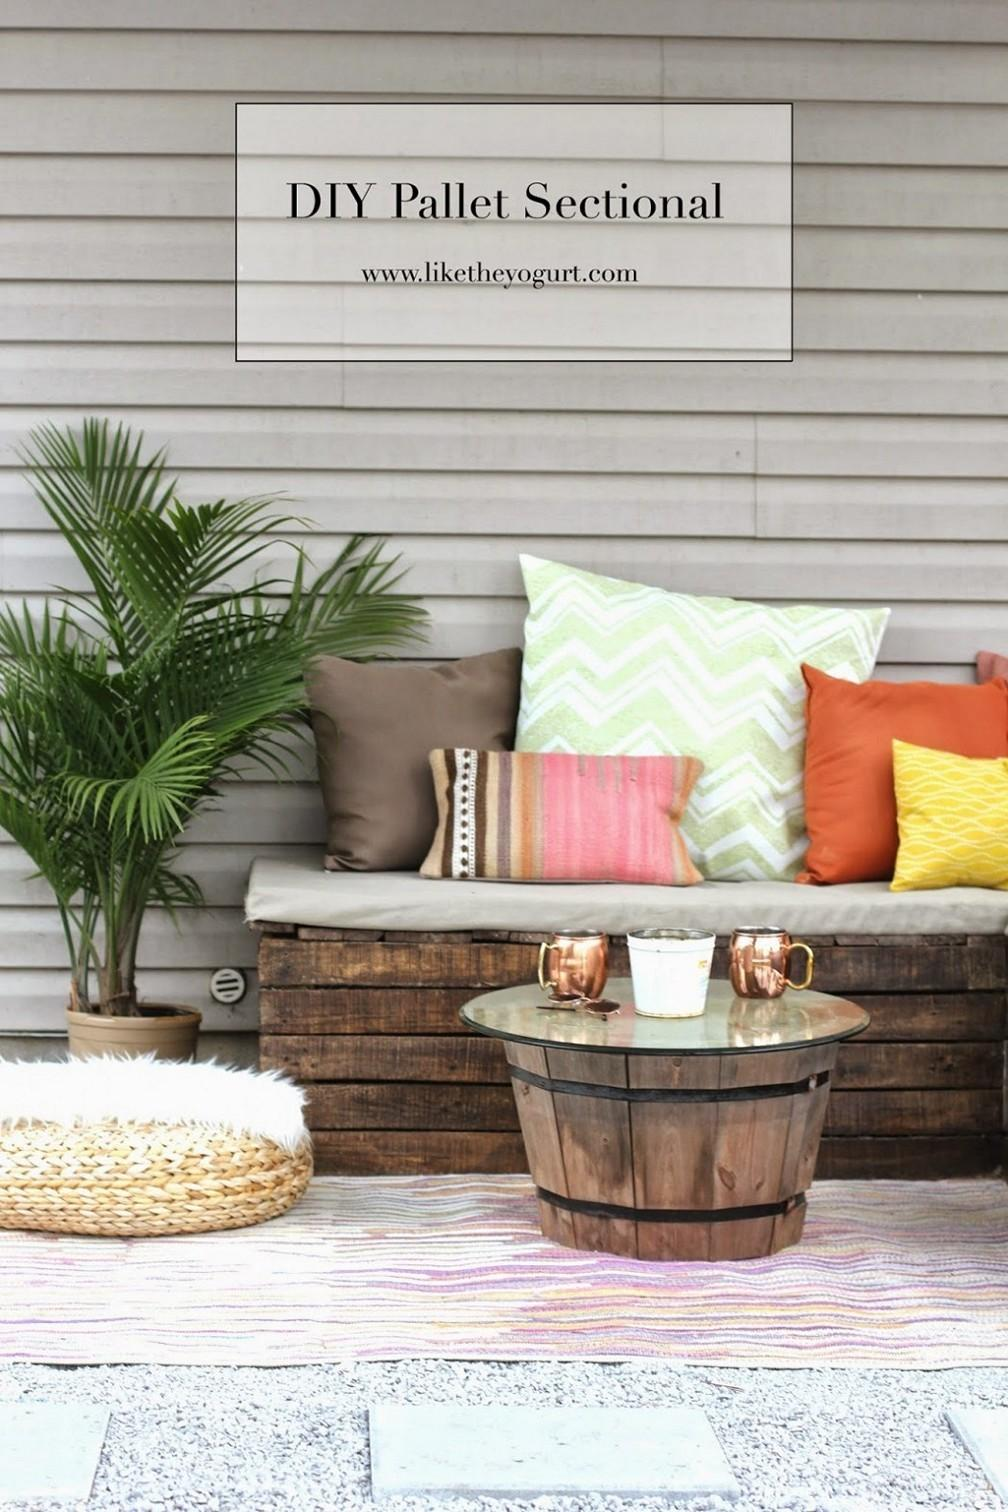 Diy Outdoor Furniture Products Hobby Gifts